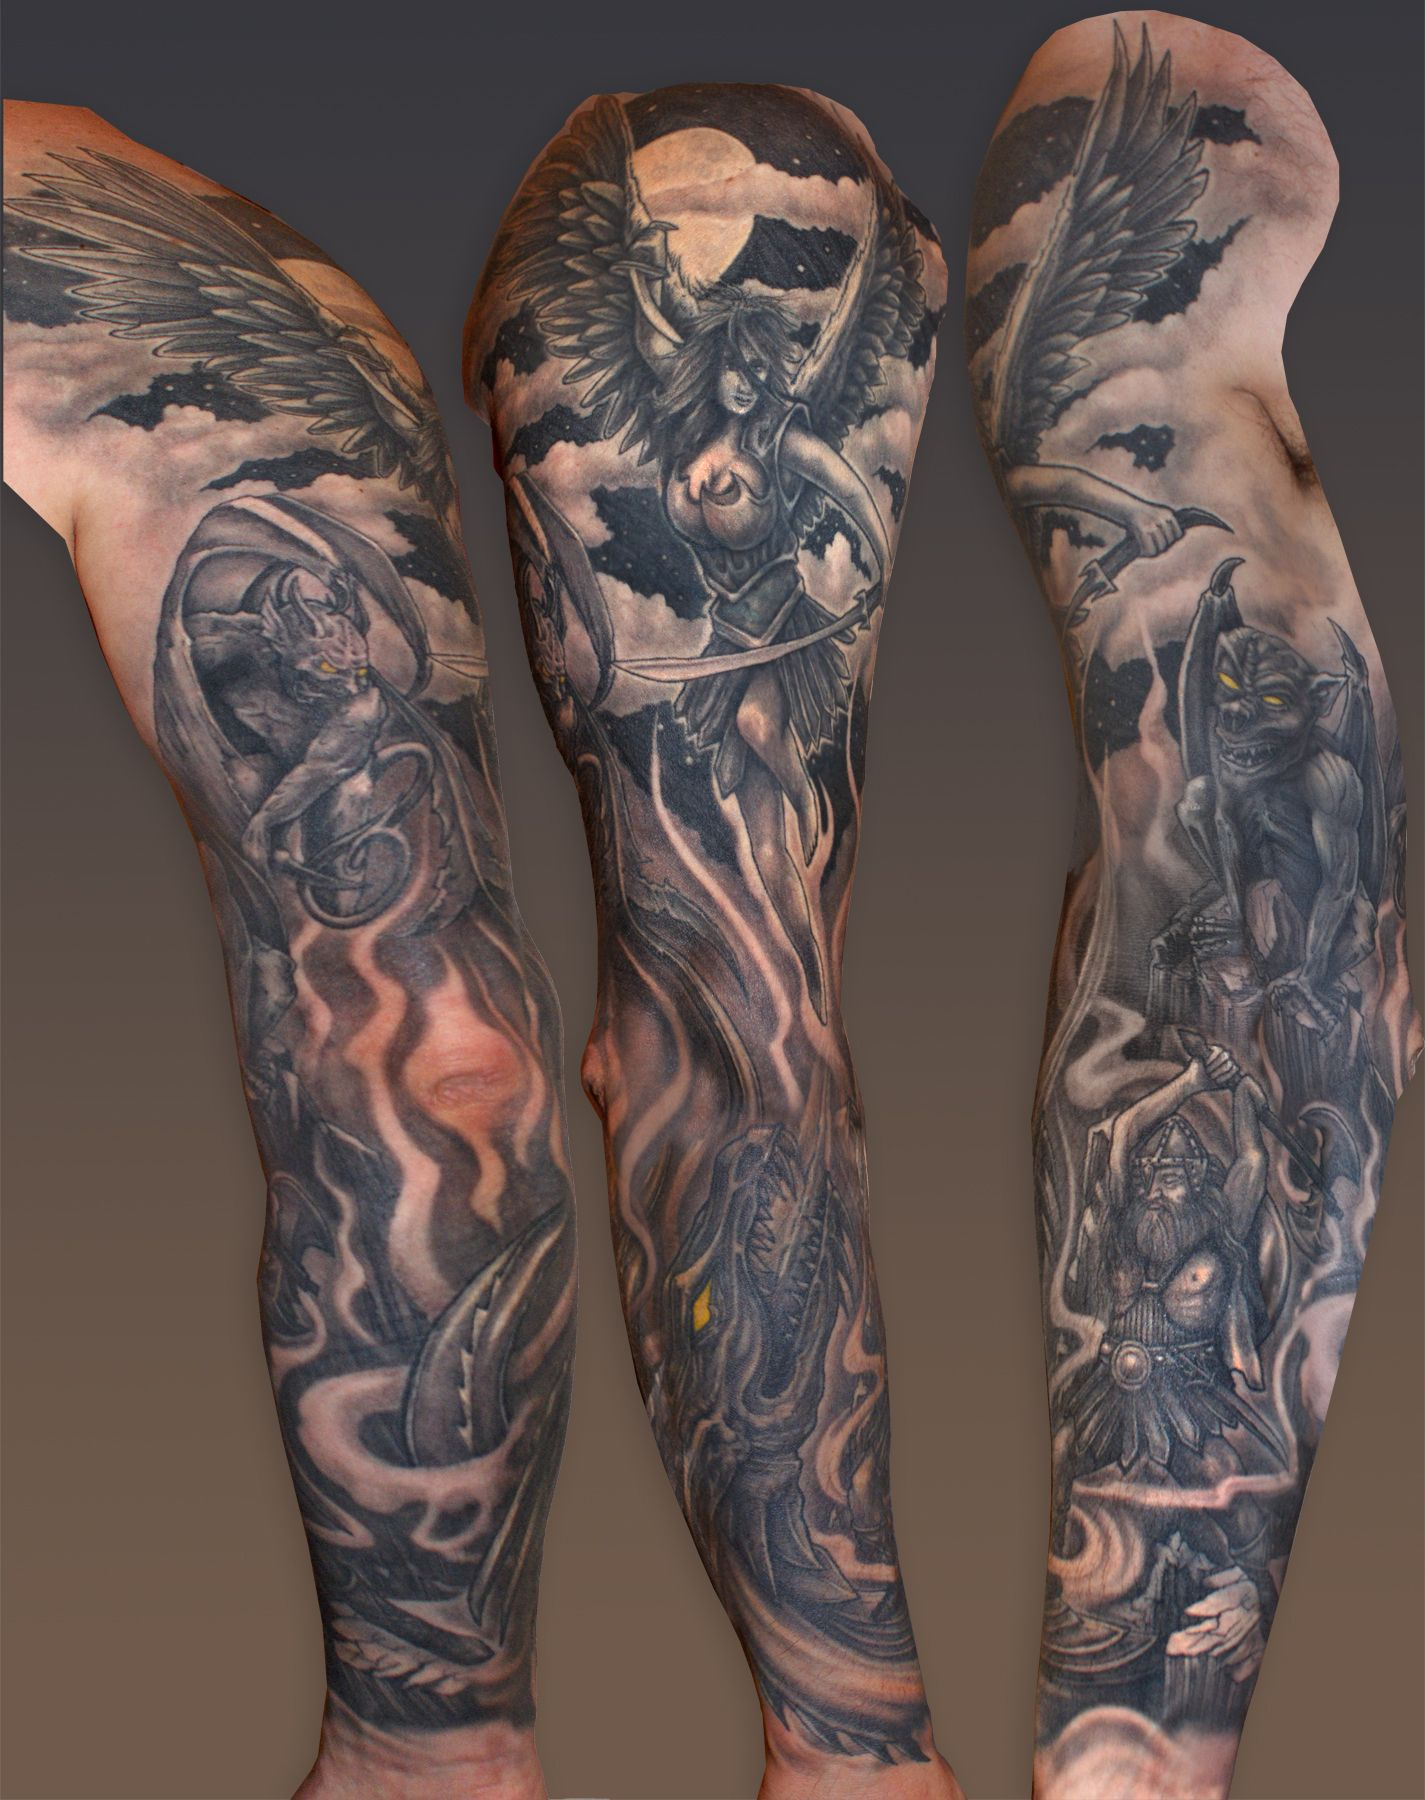 tattoo sleeves on pinterest hells angels sleeve tattoos and demon tattoo. Black Bedroom Furniture Sets. Home Design Ideas